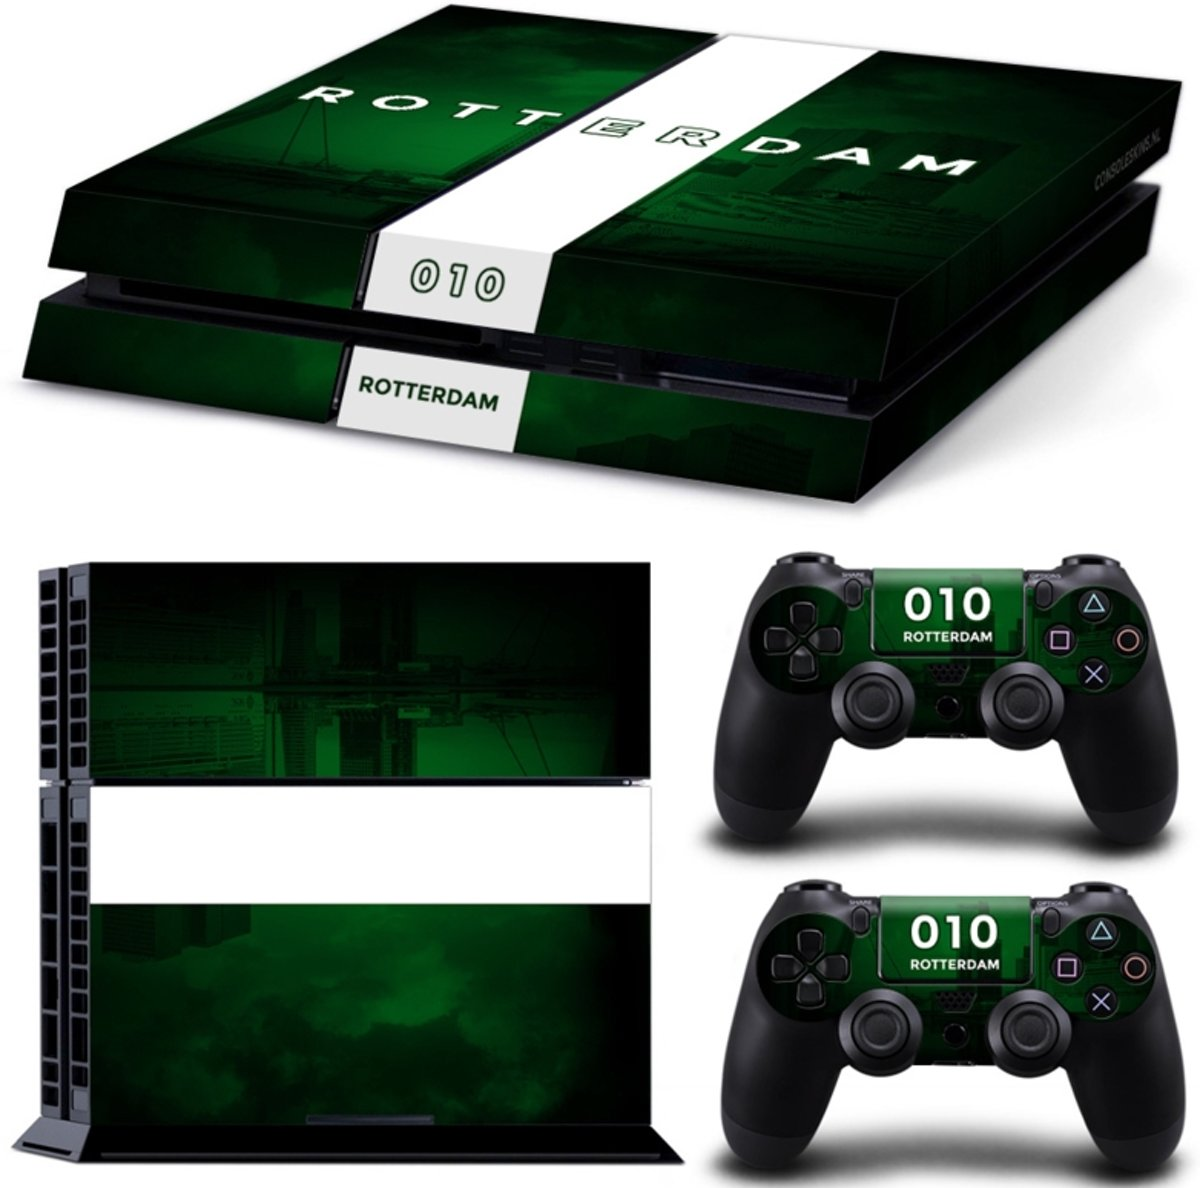 Rotterdam - PS4 Console Skins PlayStation Stickers